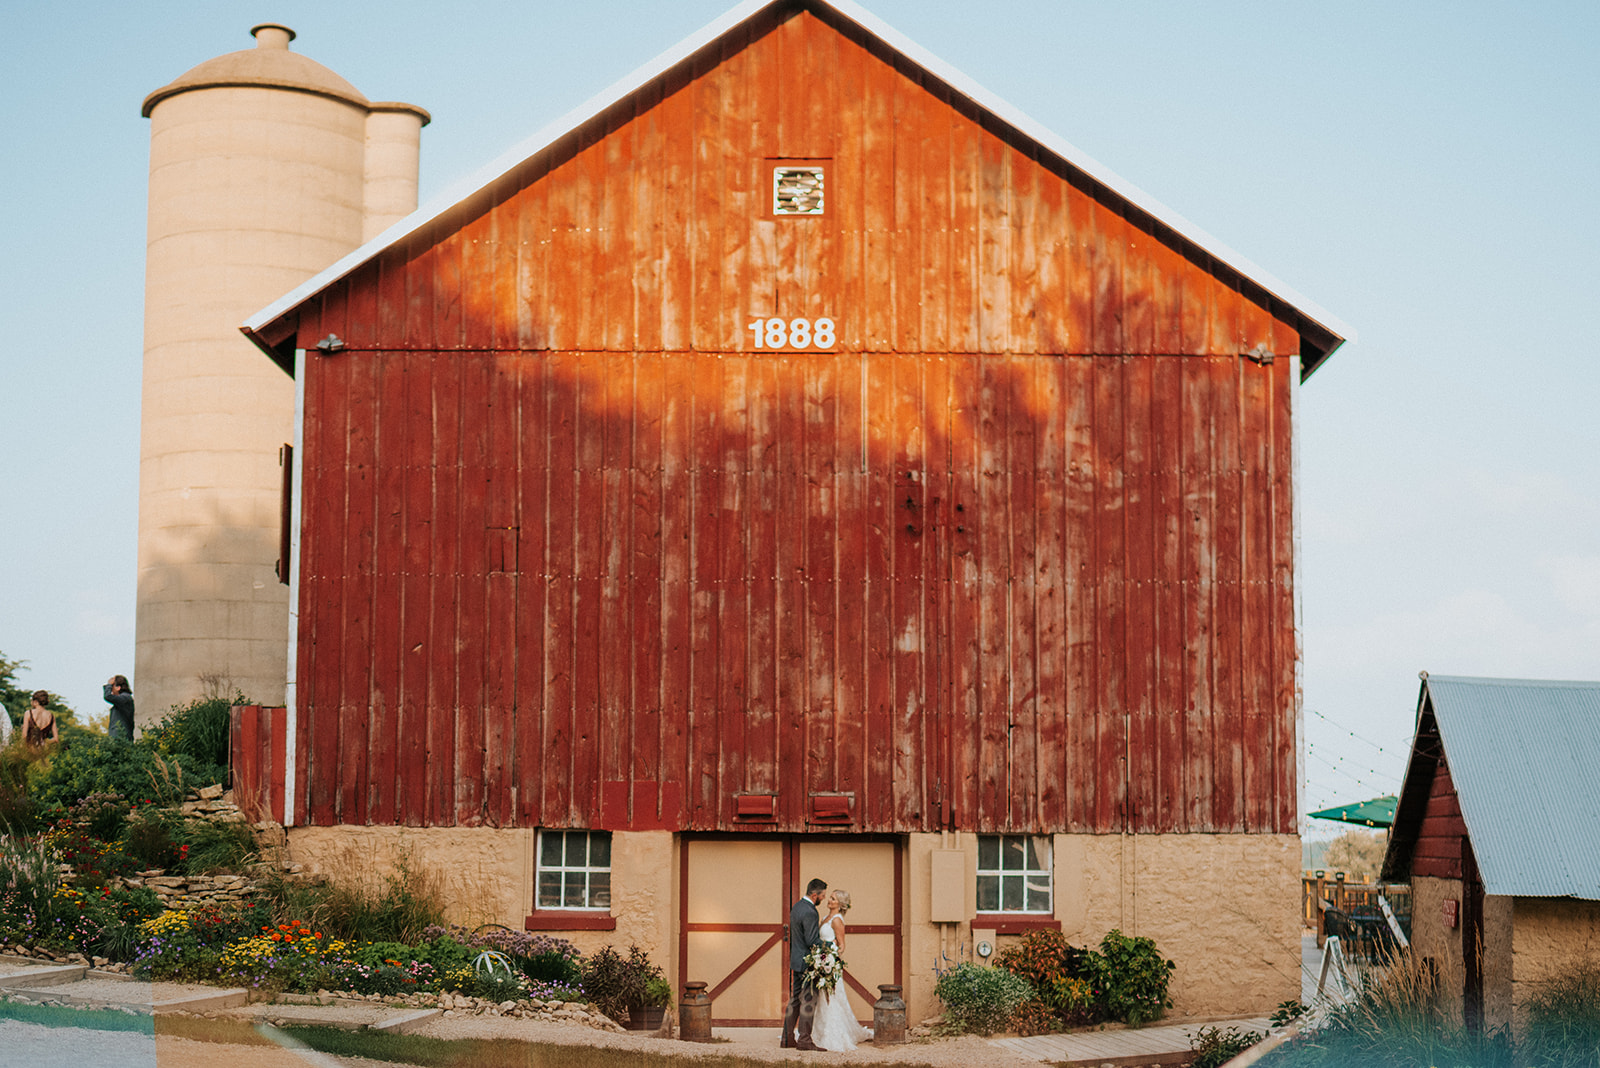 overthevineswisconsinwedding_1007.jpg